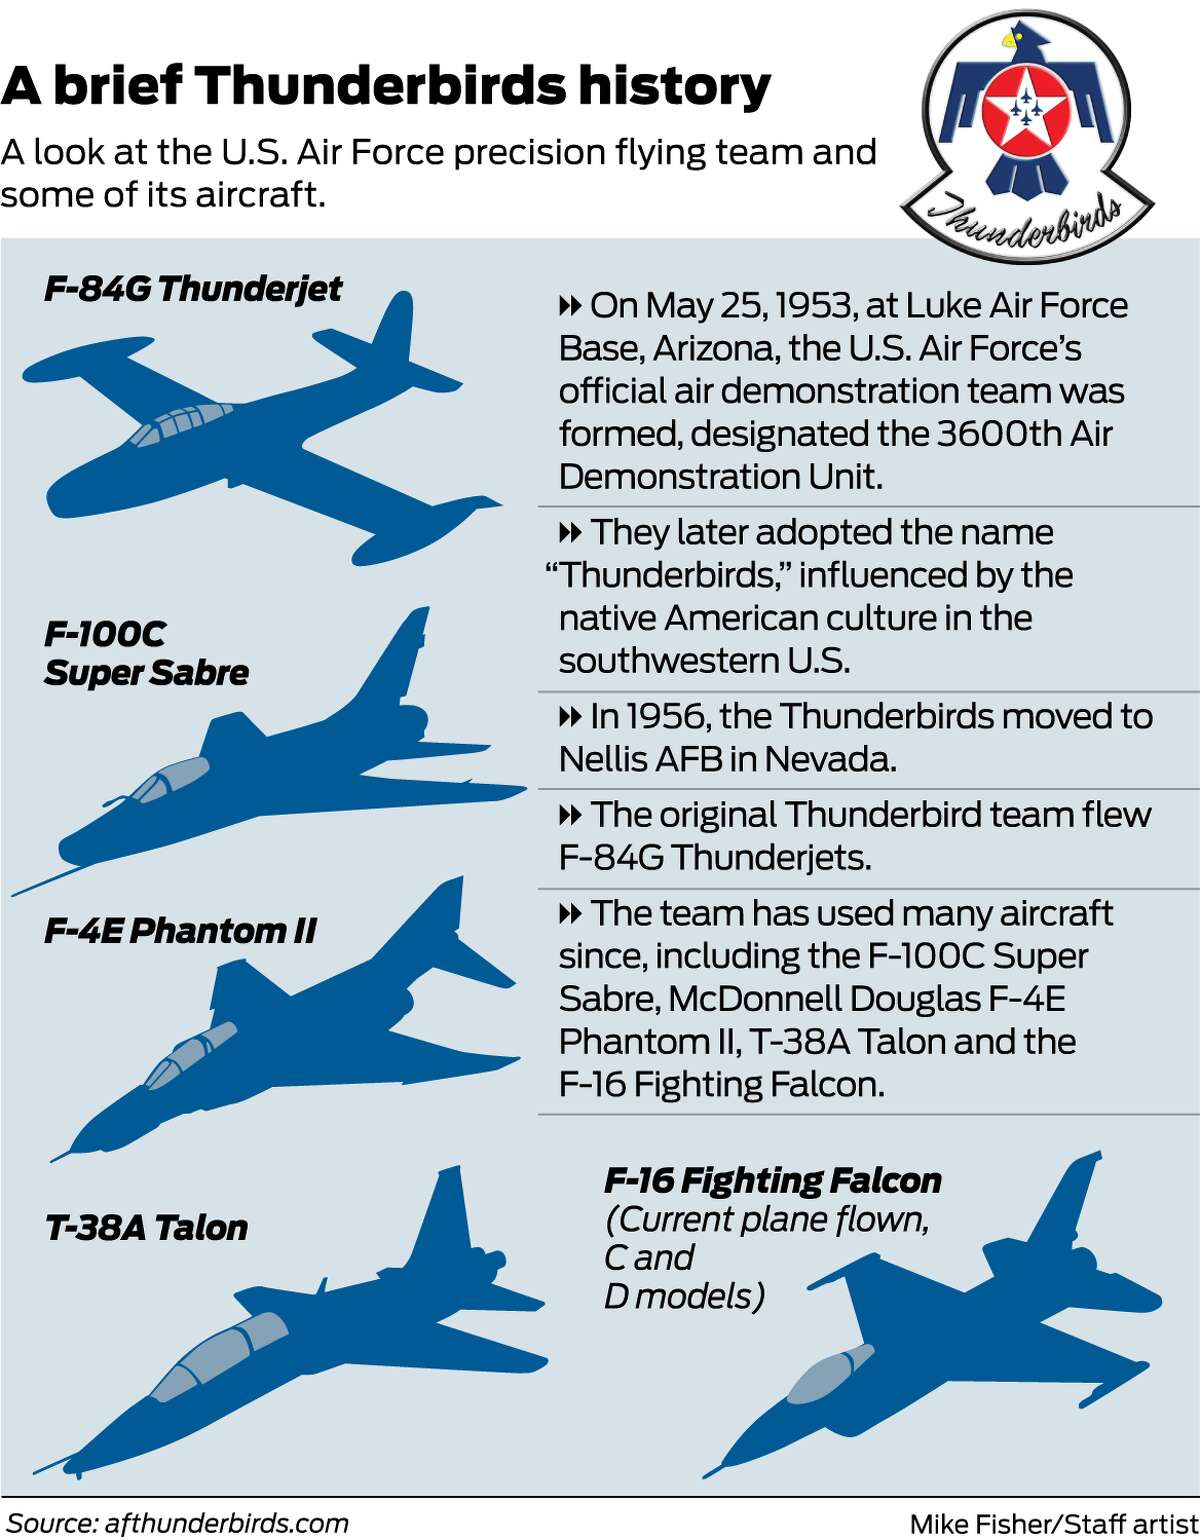 A look at the U.S. Air Force precision flying team and some of its aircraft.